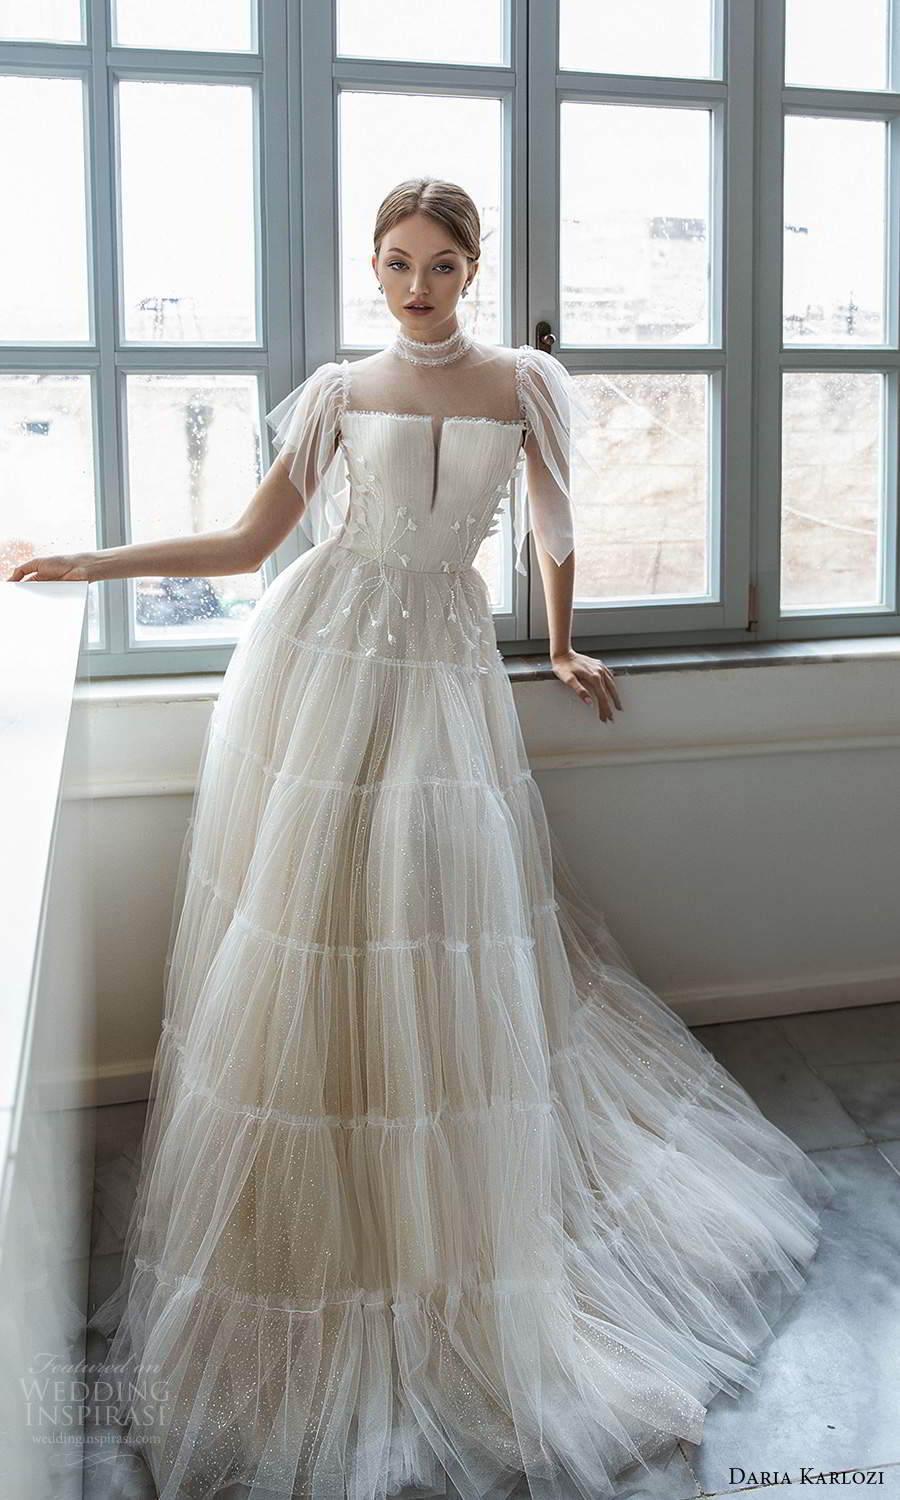 daria karlozi 2021 bridal flutter sleeves sheer high neckline split embellished ruched bodice a line ball gown wedding dress champagne color chapel train (14) mv